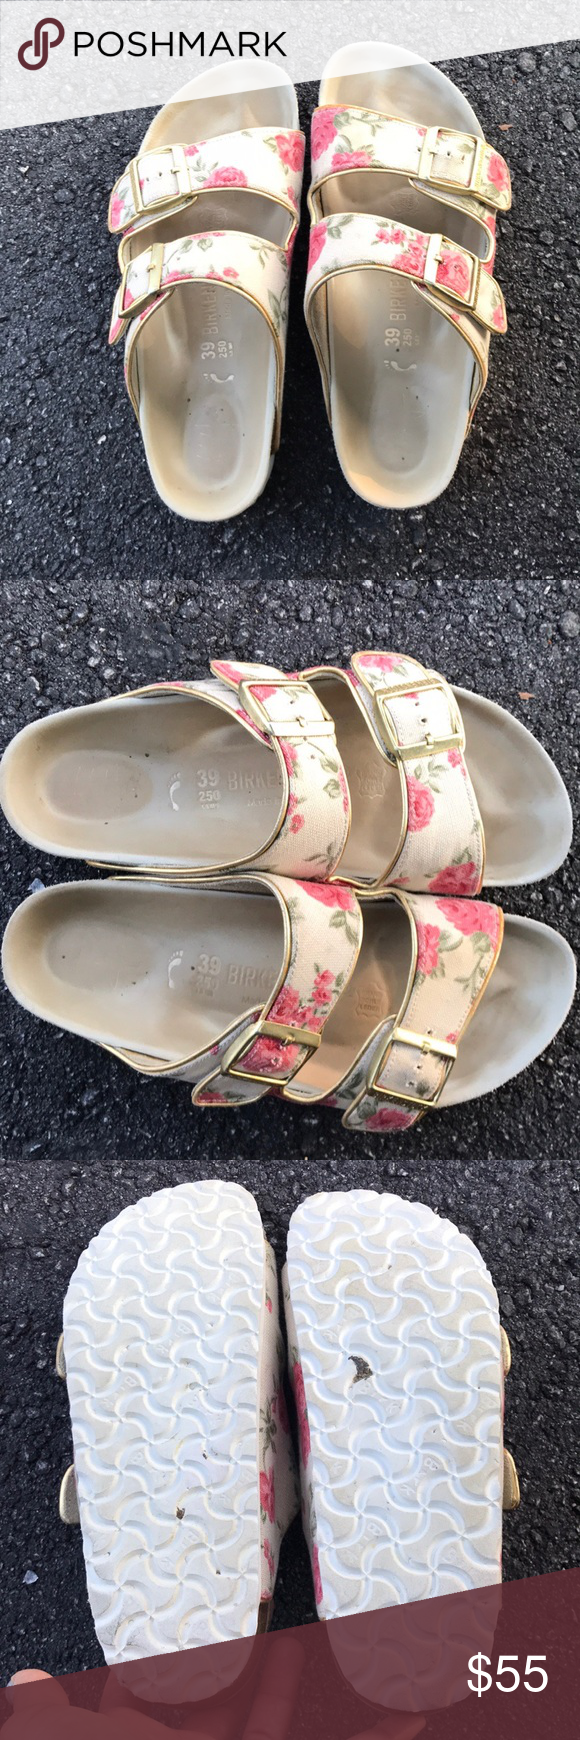 73893a0f69ca 🌸FLORAL BIRKENSTOCK ARIZONA SANDALS 39N🌸 Just wow. I absolutely loved  these shoes from